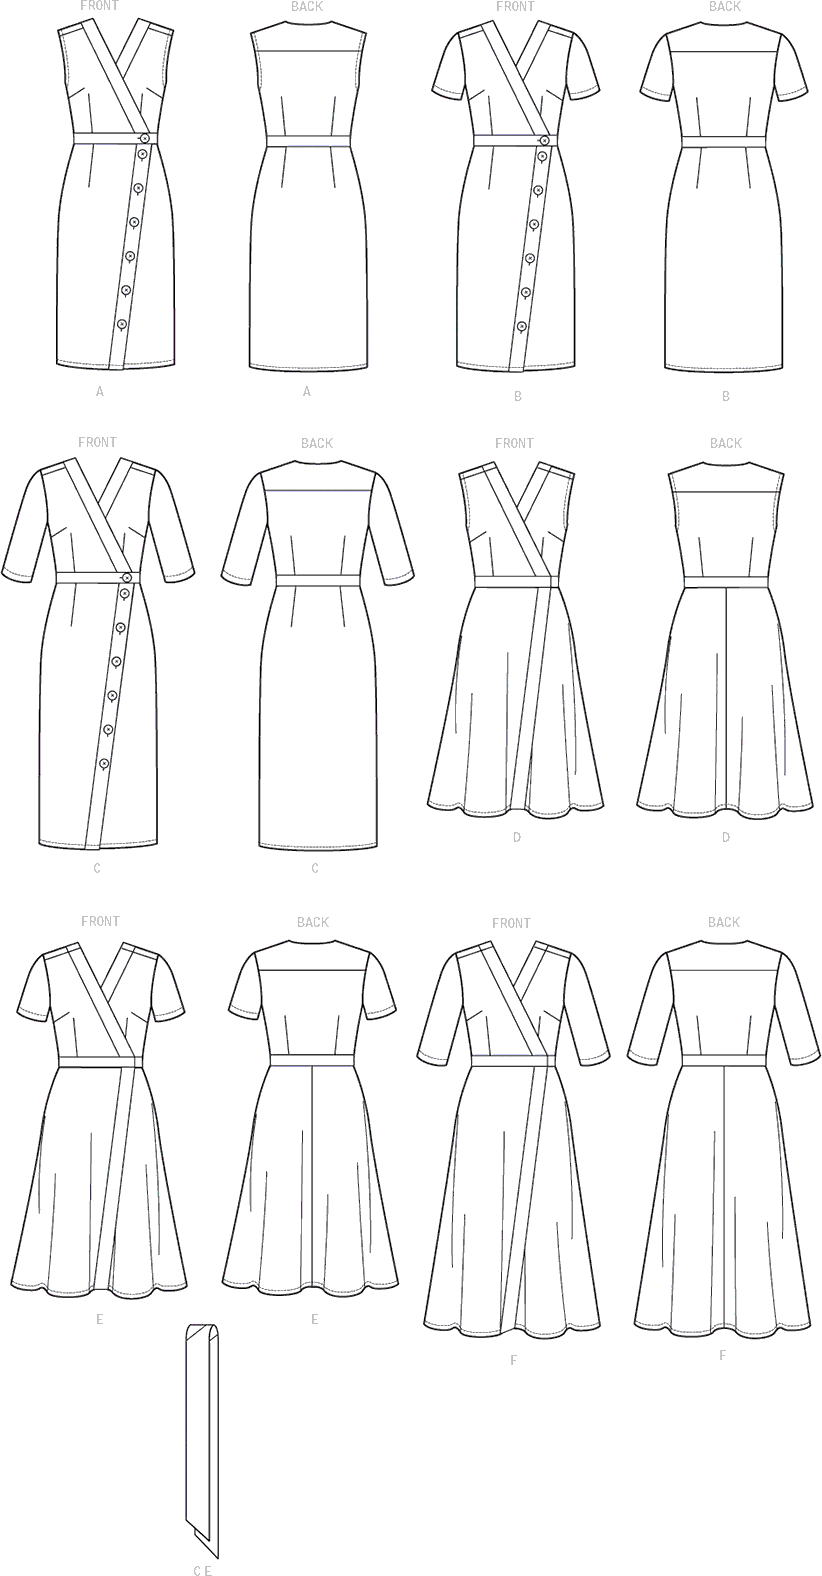 Vogue Pattern V9313 Misses Dress and Sash 9313 Line Art From Patternsandplains.com